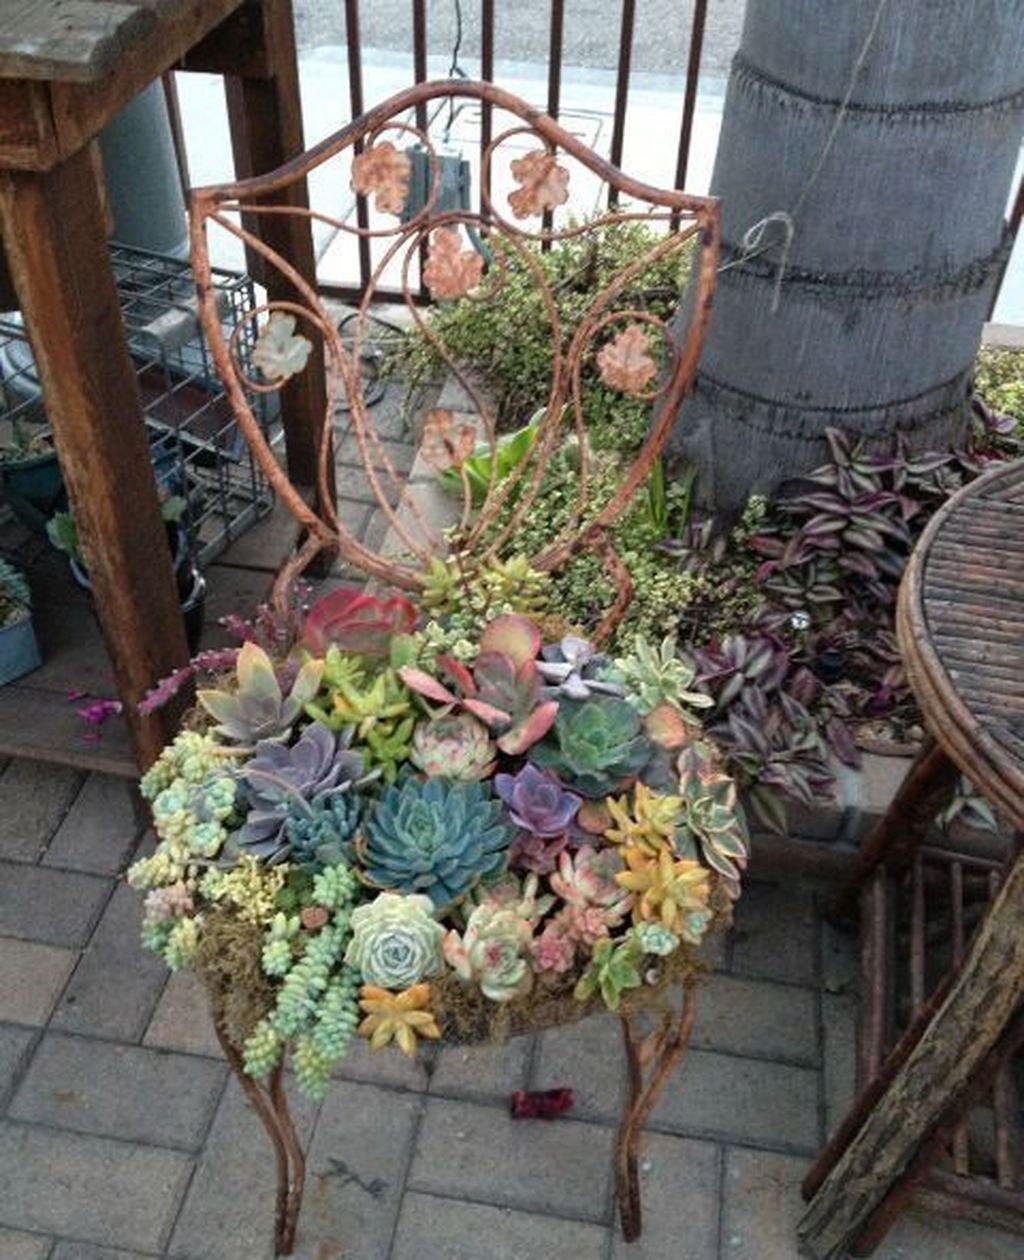 38 Genius Diy Outdoor Succulent Garden Ideas For Spring To Try is part of Whimsical garden - Ahhhh! Spring is just around the corner   the onset of warmth, budding of trees, blossoming of flowers  A time of renewal […]